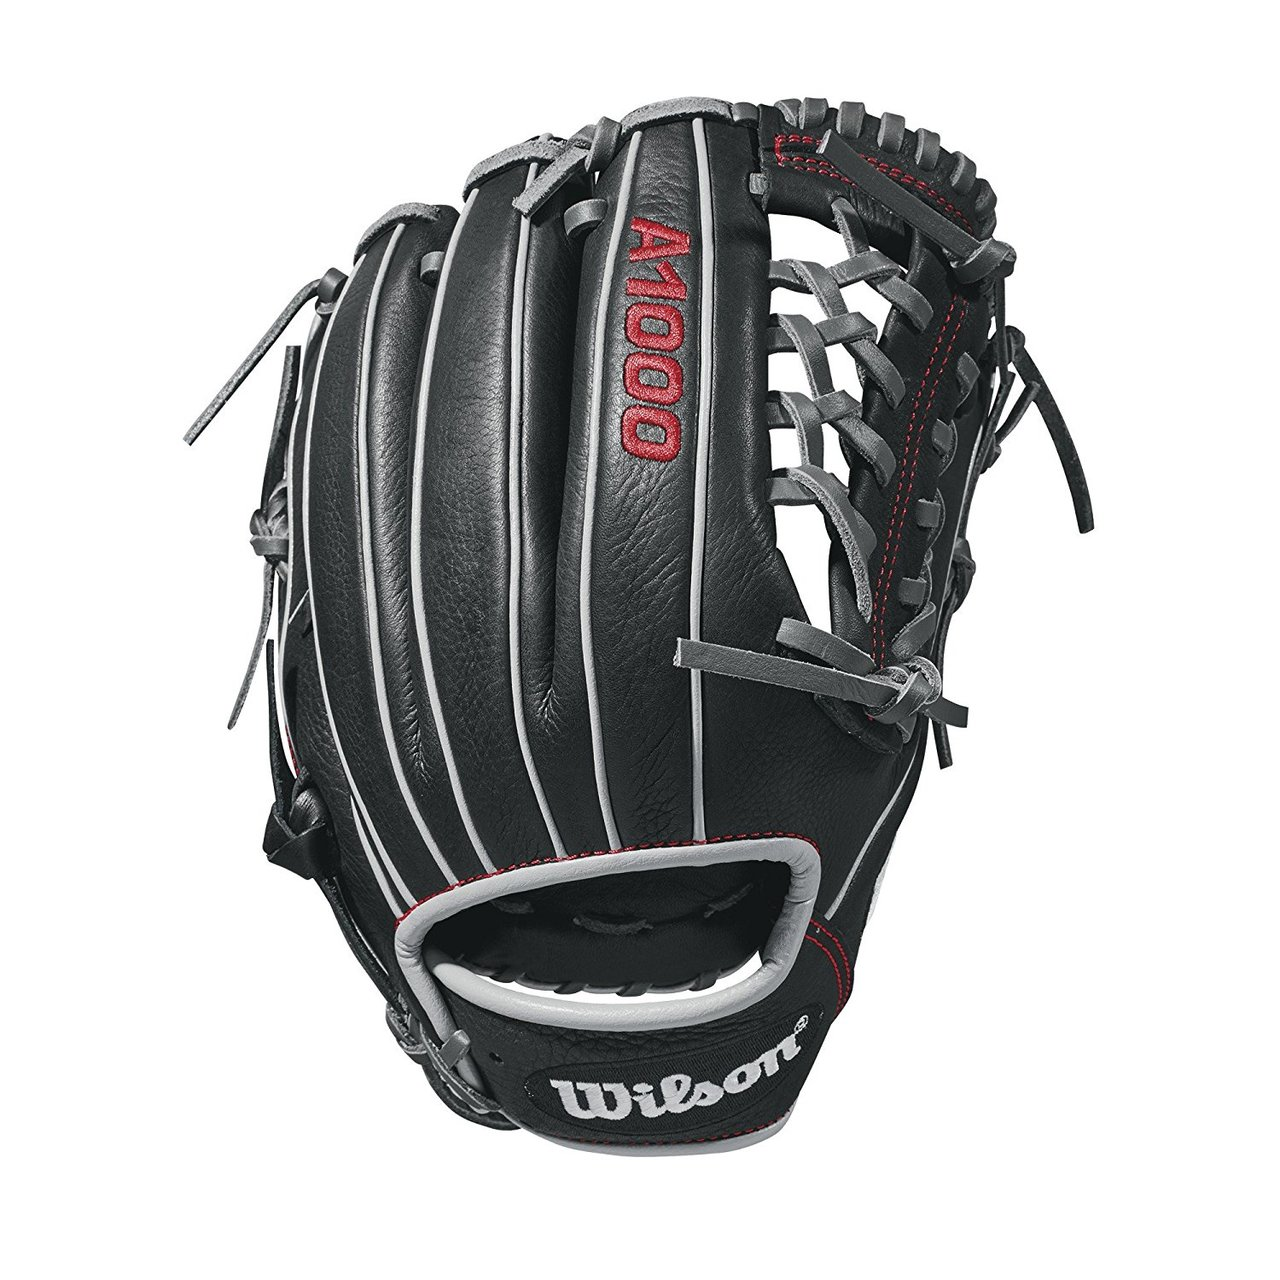 wilson-2018-a1000-1789-baseball-glove-11-5-right-hand-throw WTA10RB181789-RightHandThrow Wilson 887768614829 The 11.5 Wilson A1000 glove is made with a Pro laced